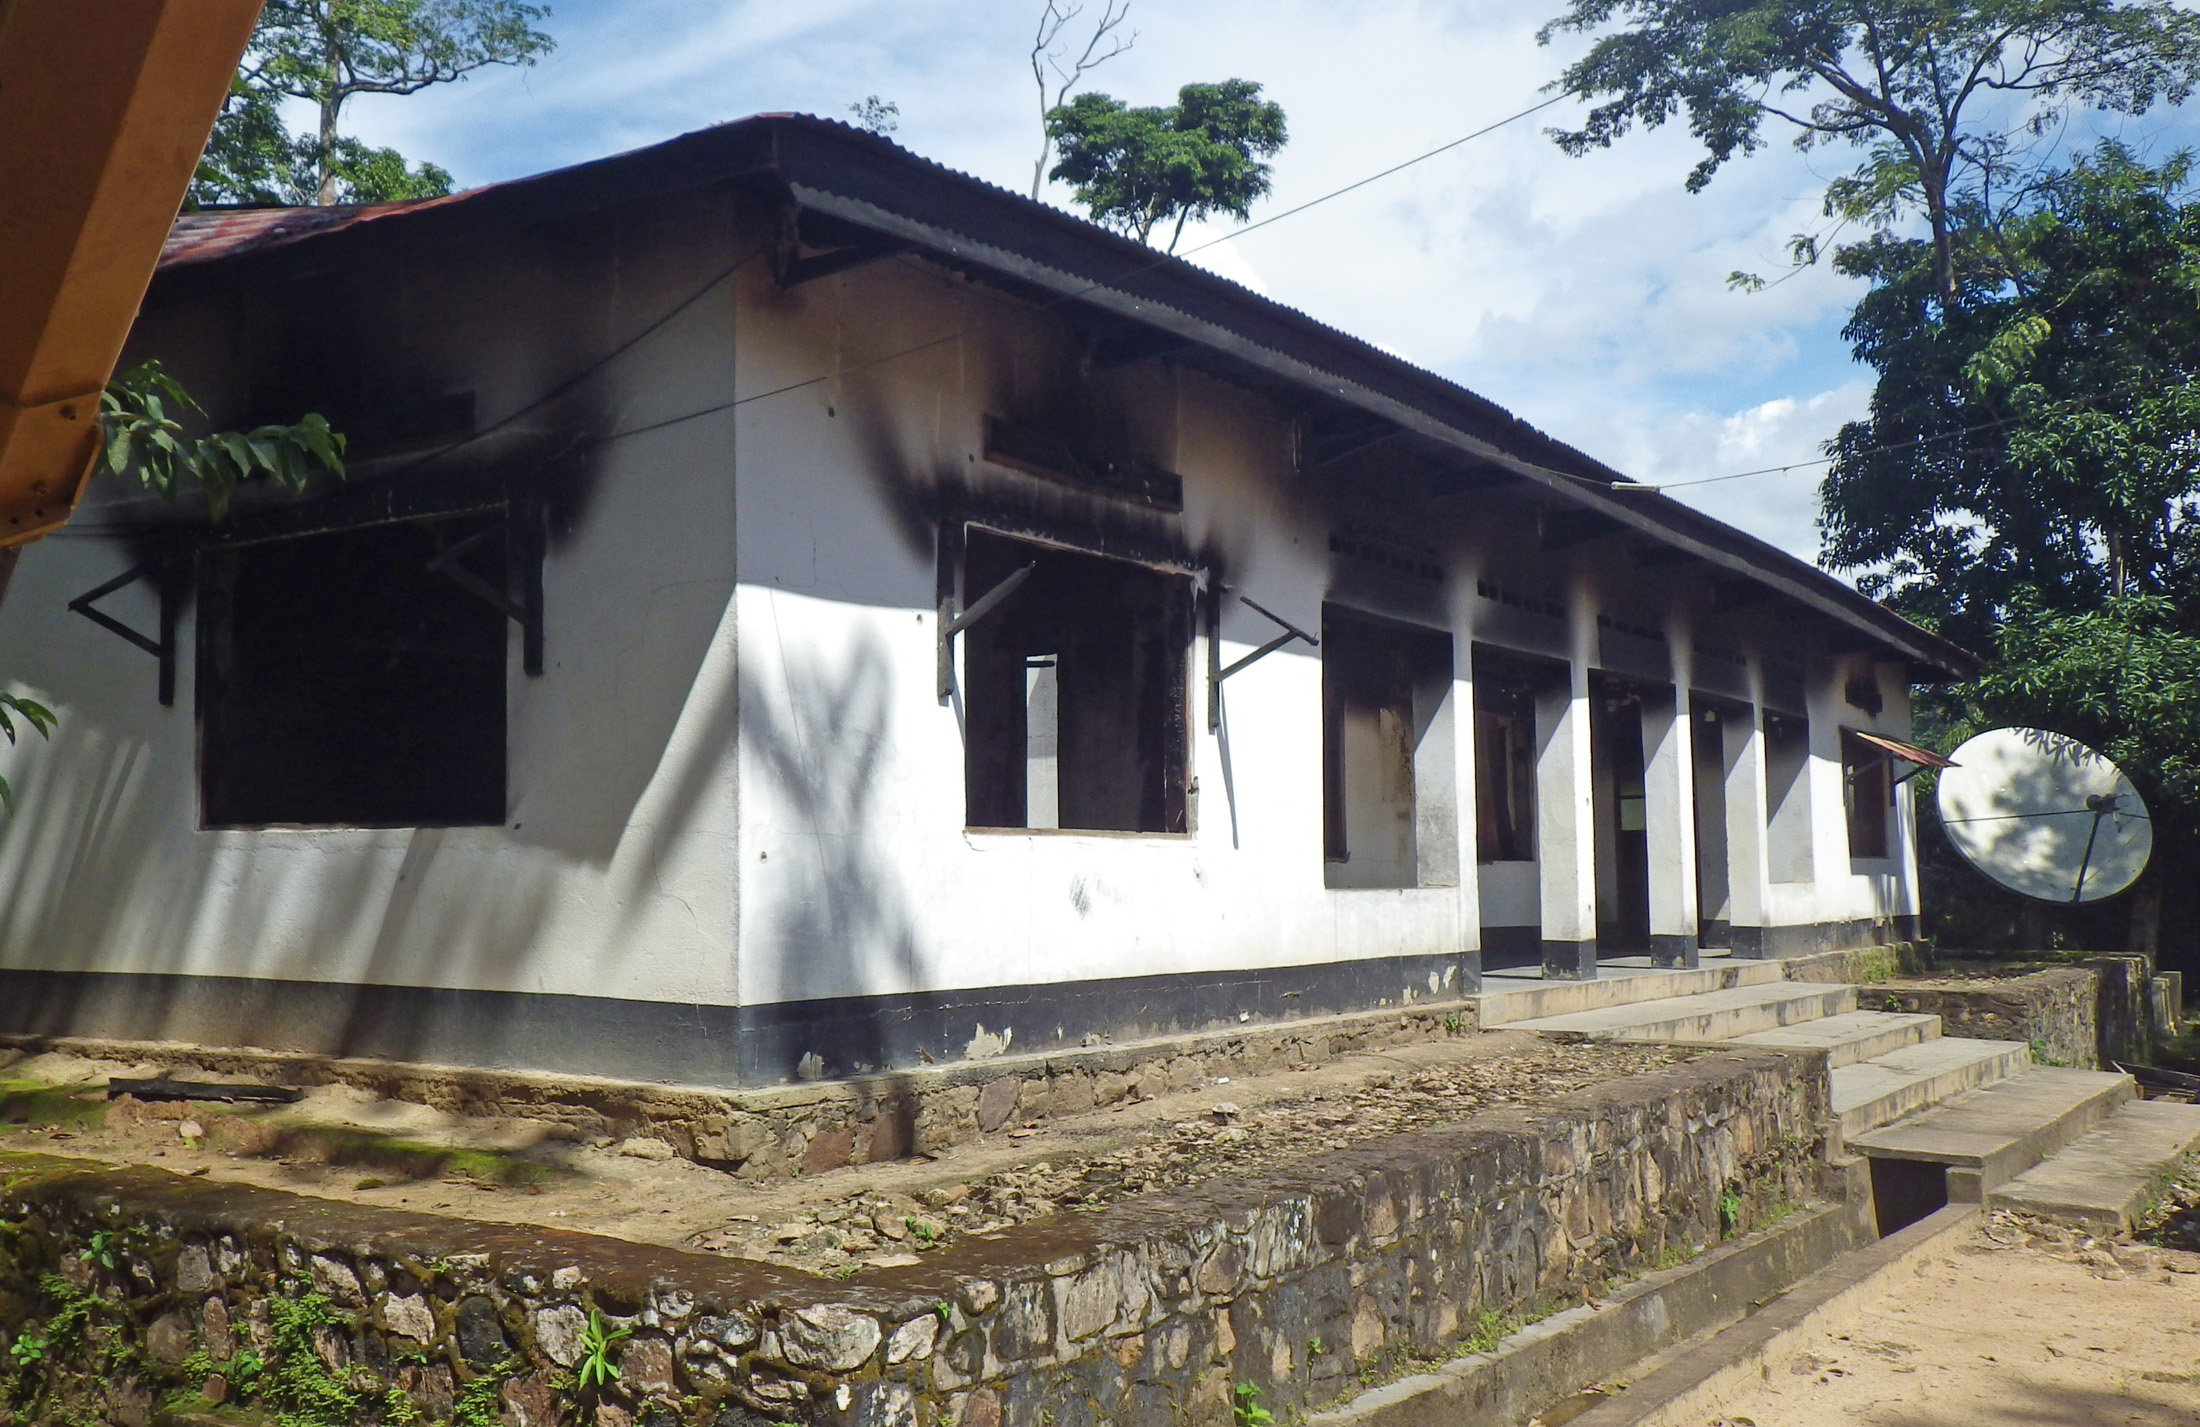 Administrative offices in the Okapi Forest Reserve, in DRC's Orientale province, were torched and several people killed, with others abducted, during a June 2012 raid by an armed group led by Paul Sadala, better known as Morgan